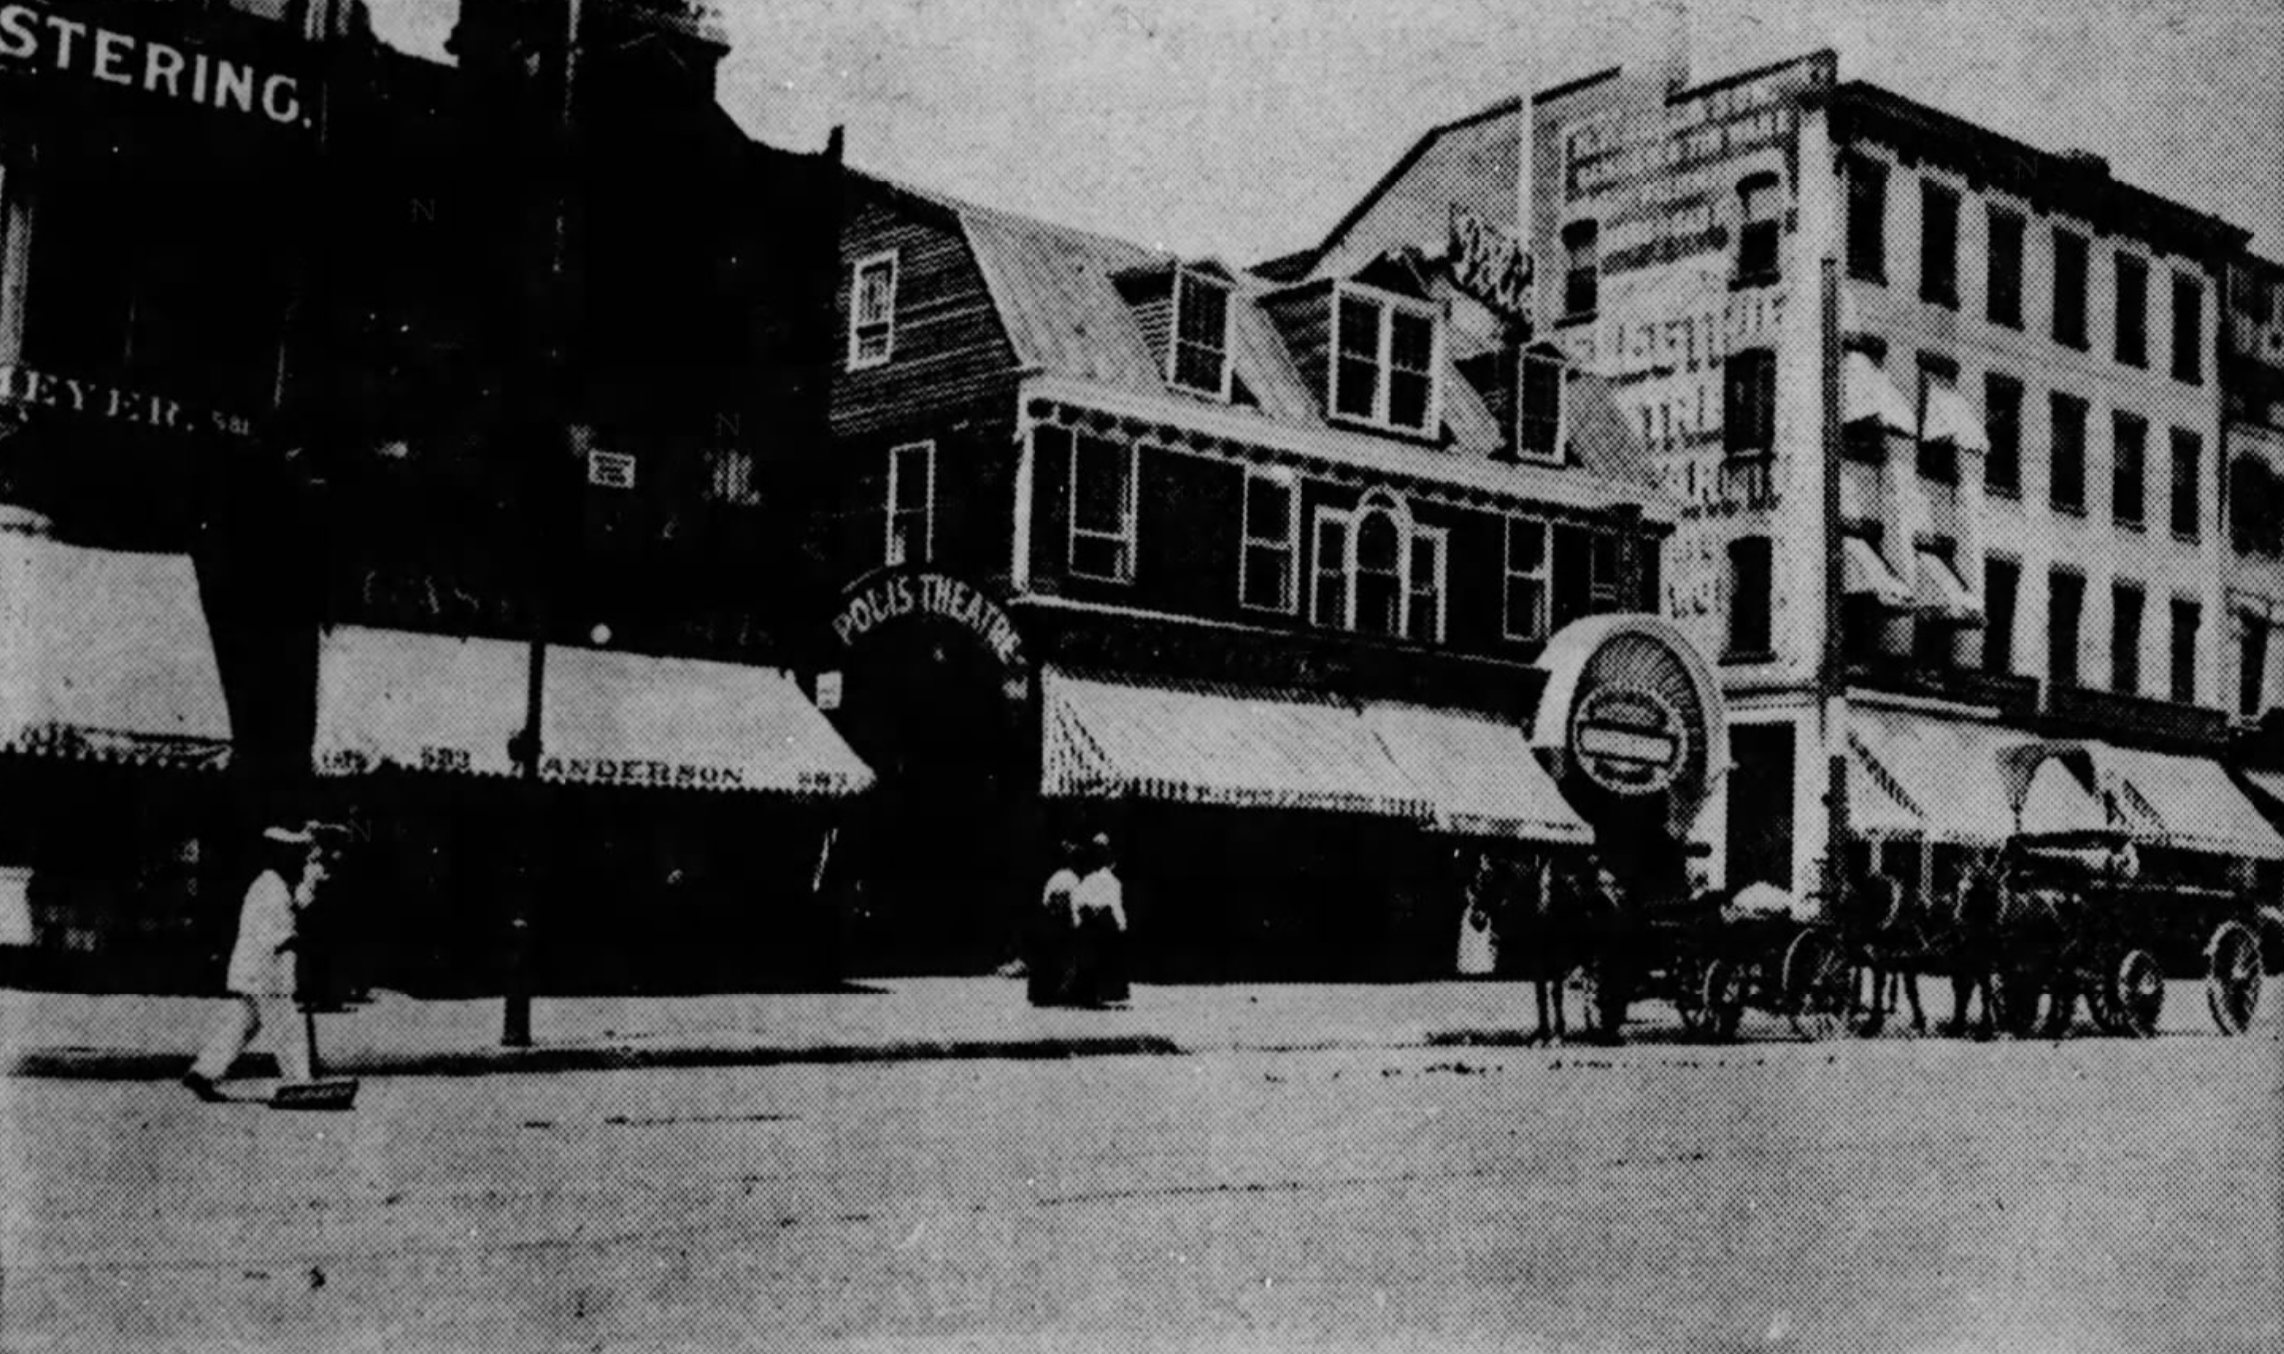 Poli's Theatre first opened on Main Street, Hartford, Connecticut in 1903.